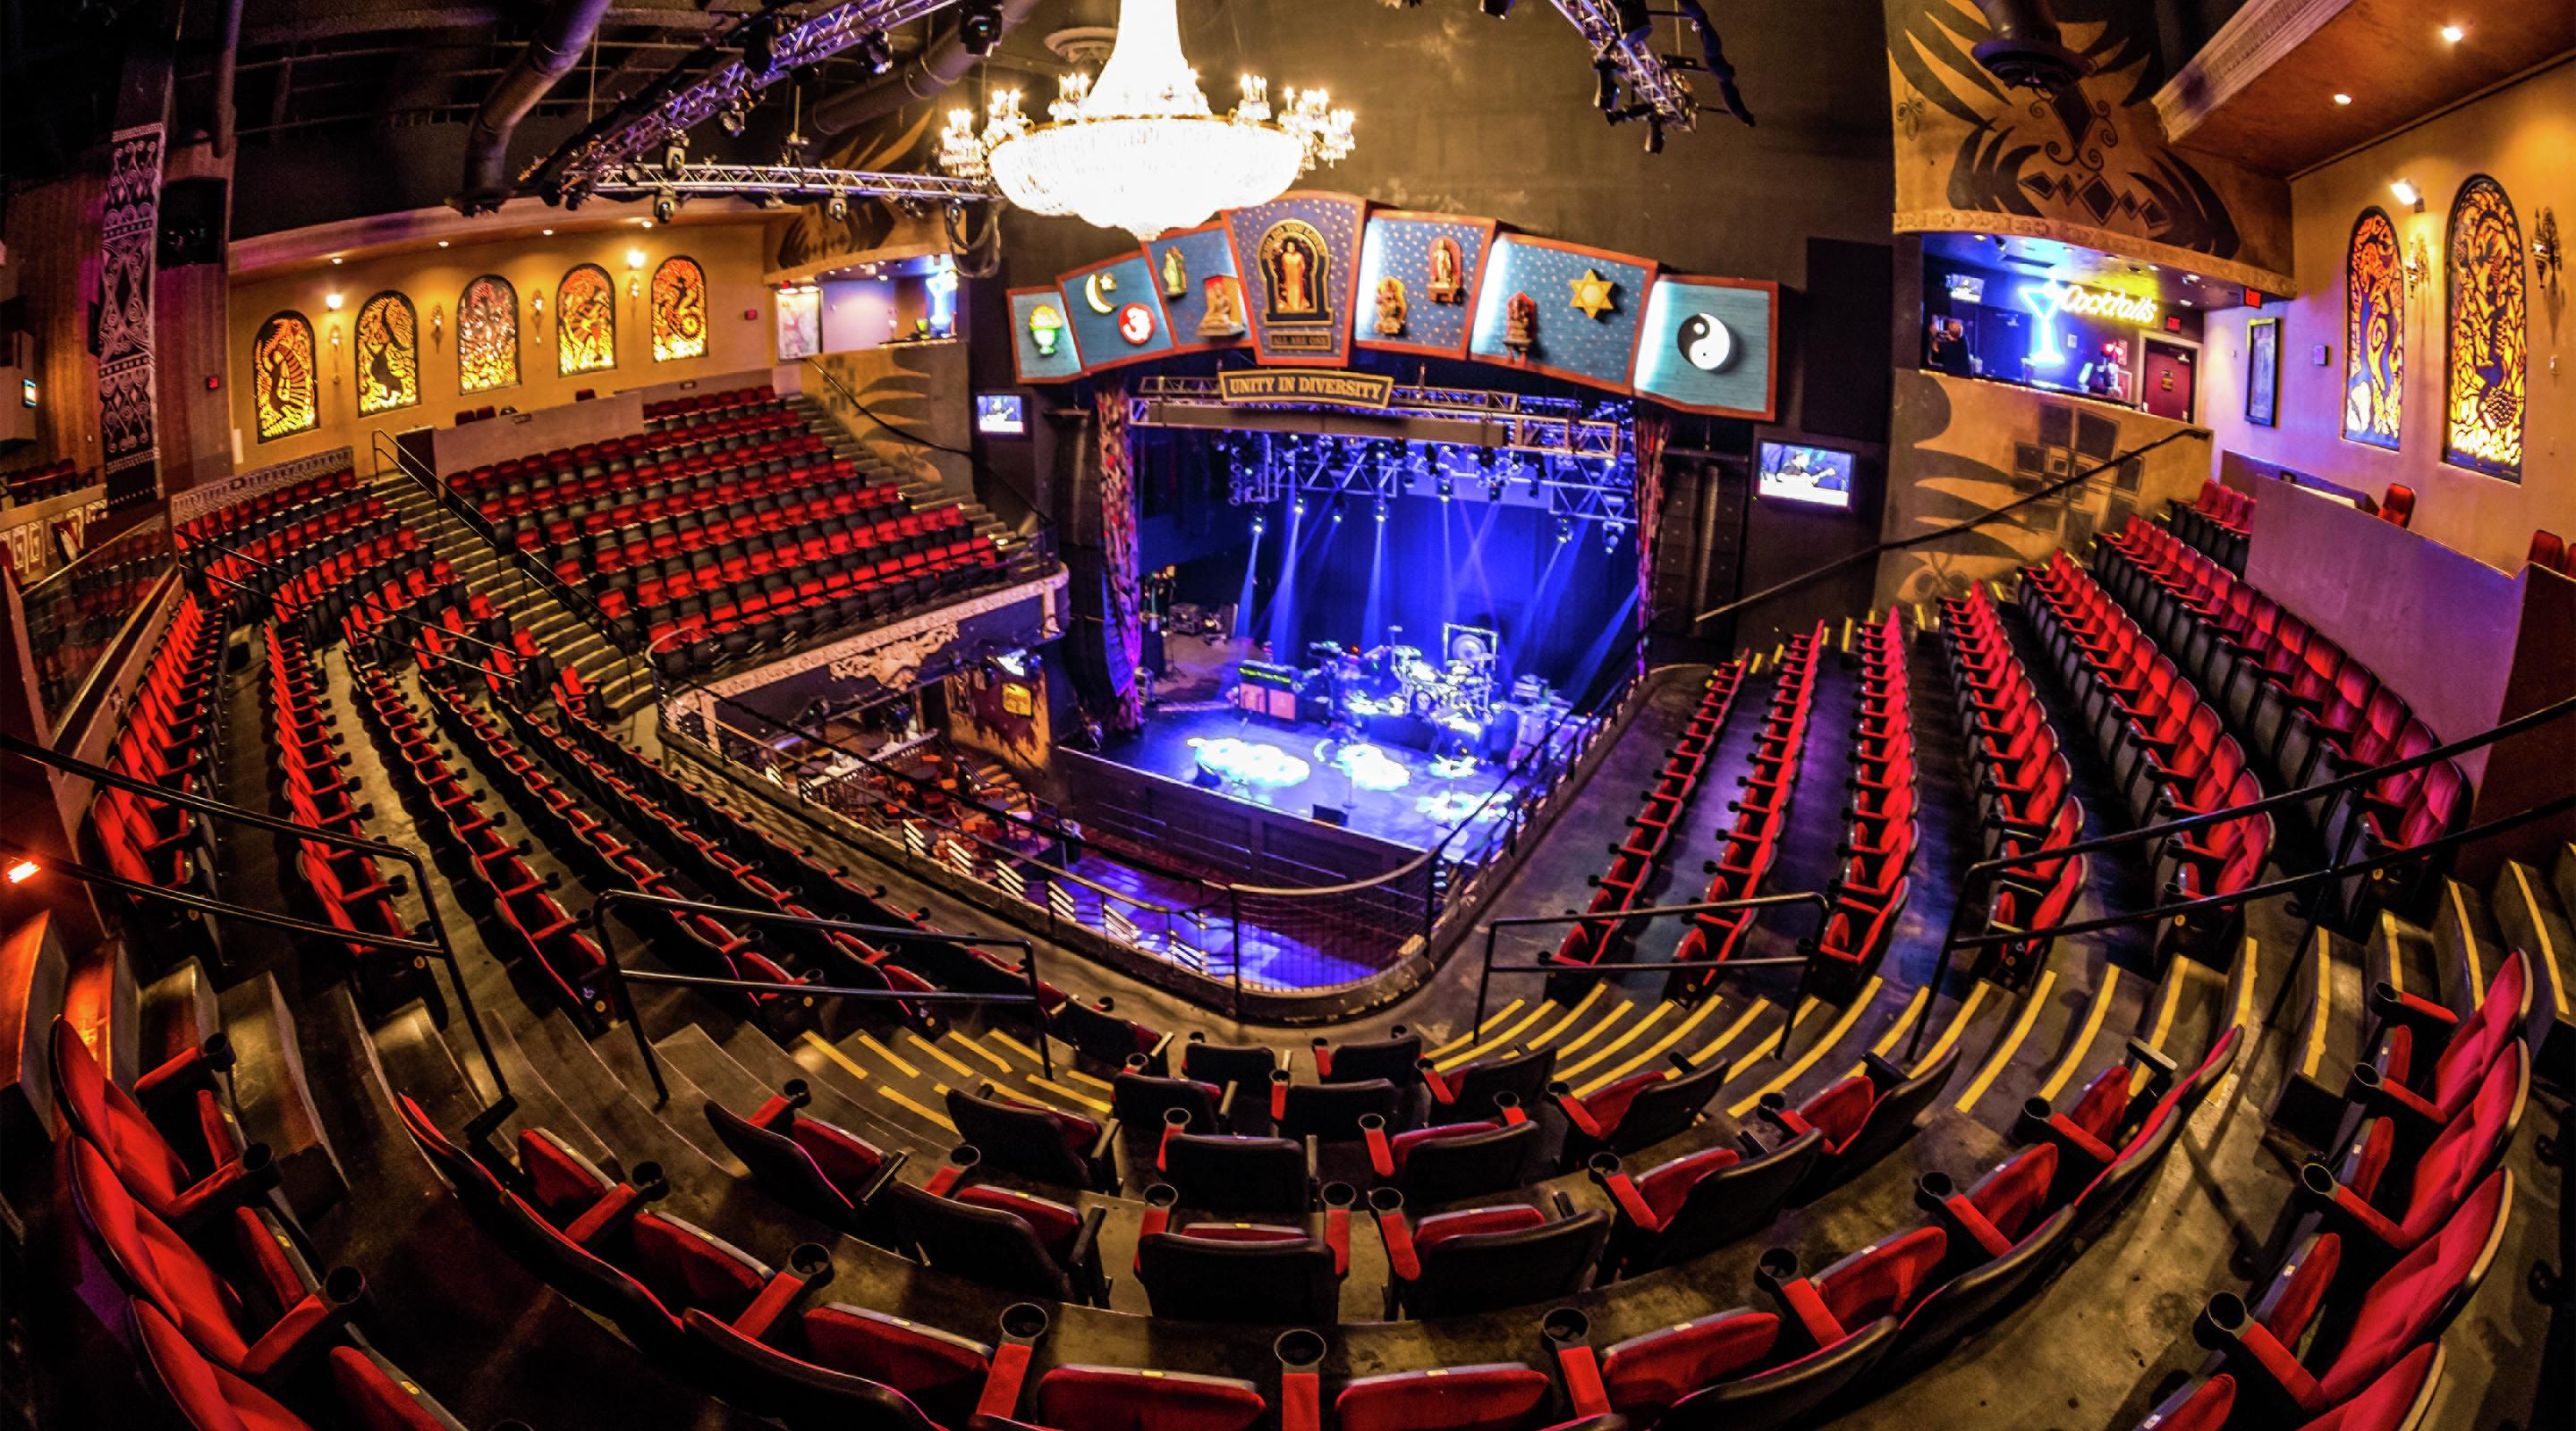 image of what House of Blues looks like. Big theater with red seats and a stage in the center.